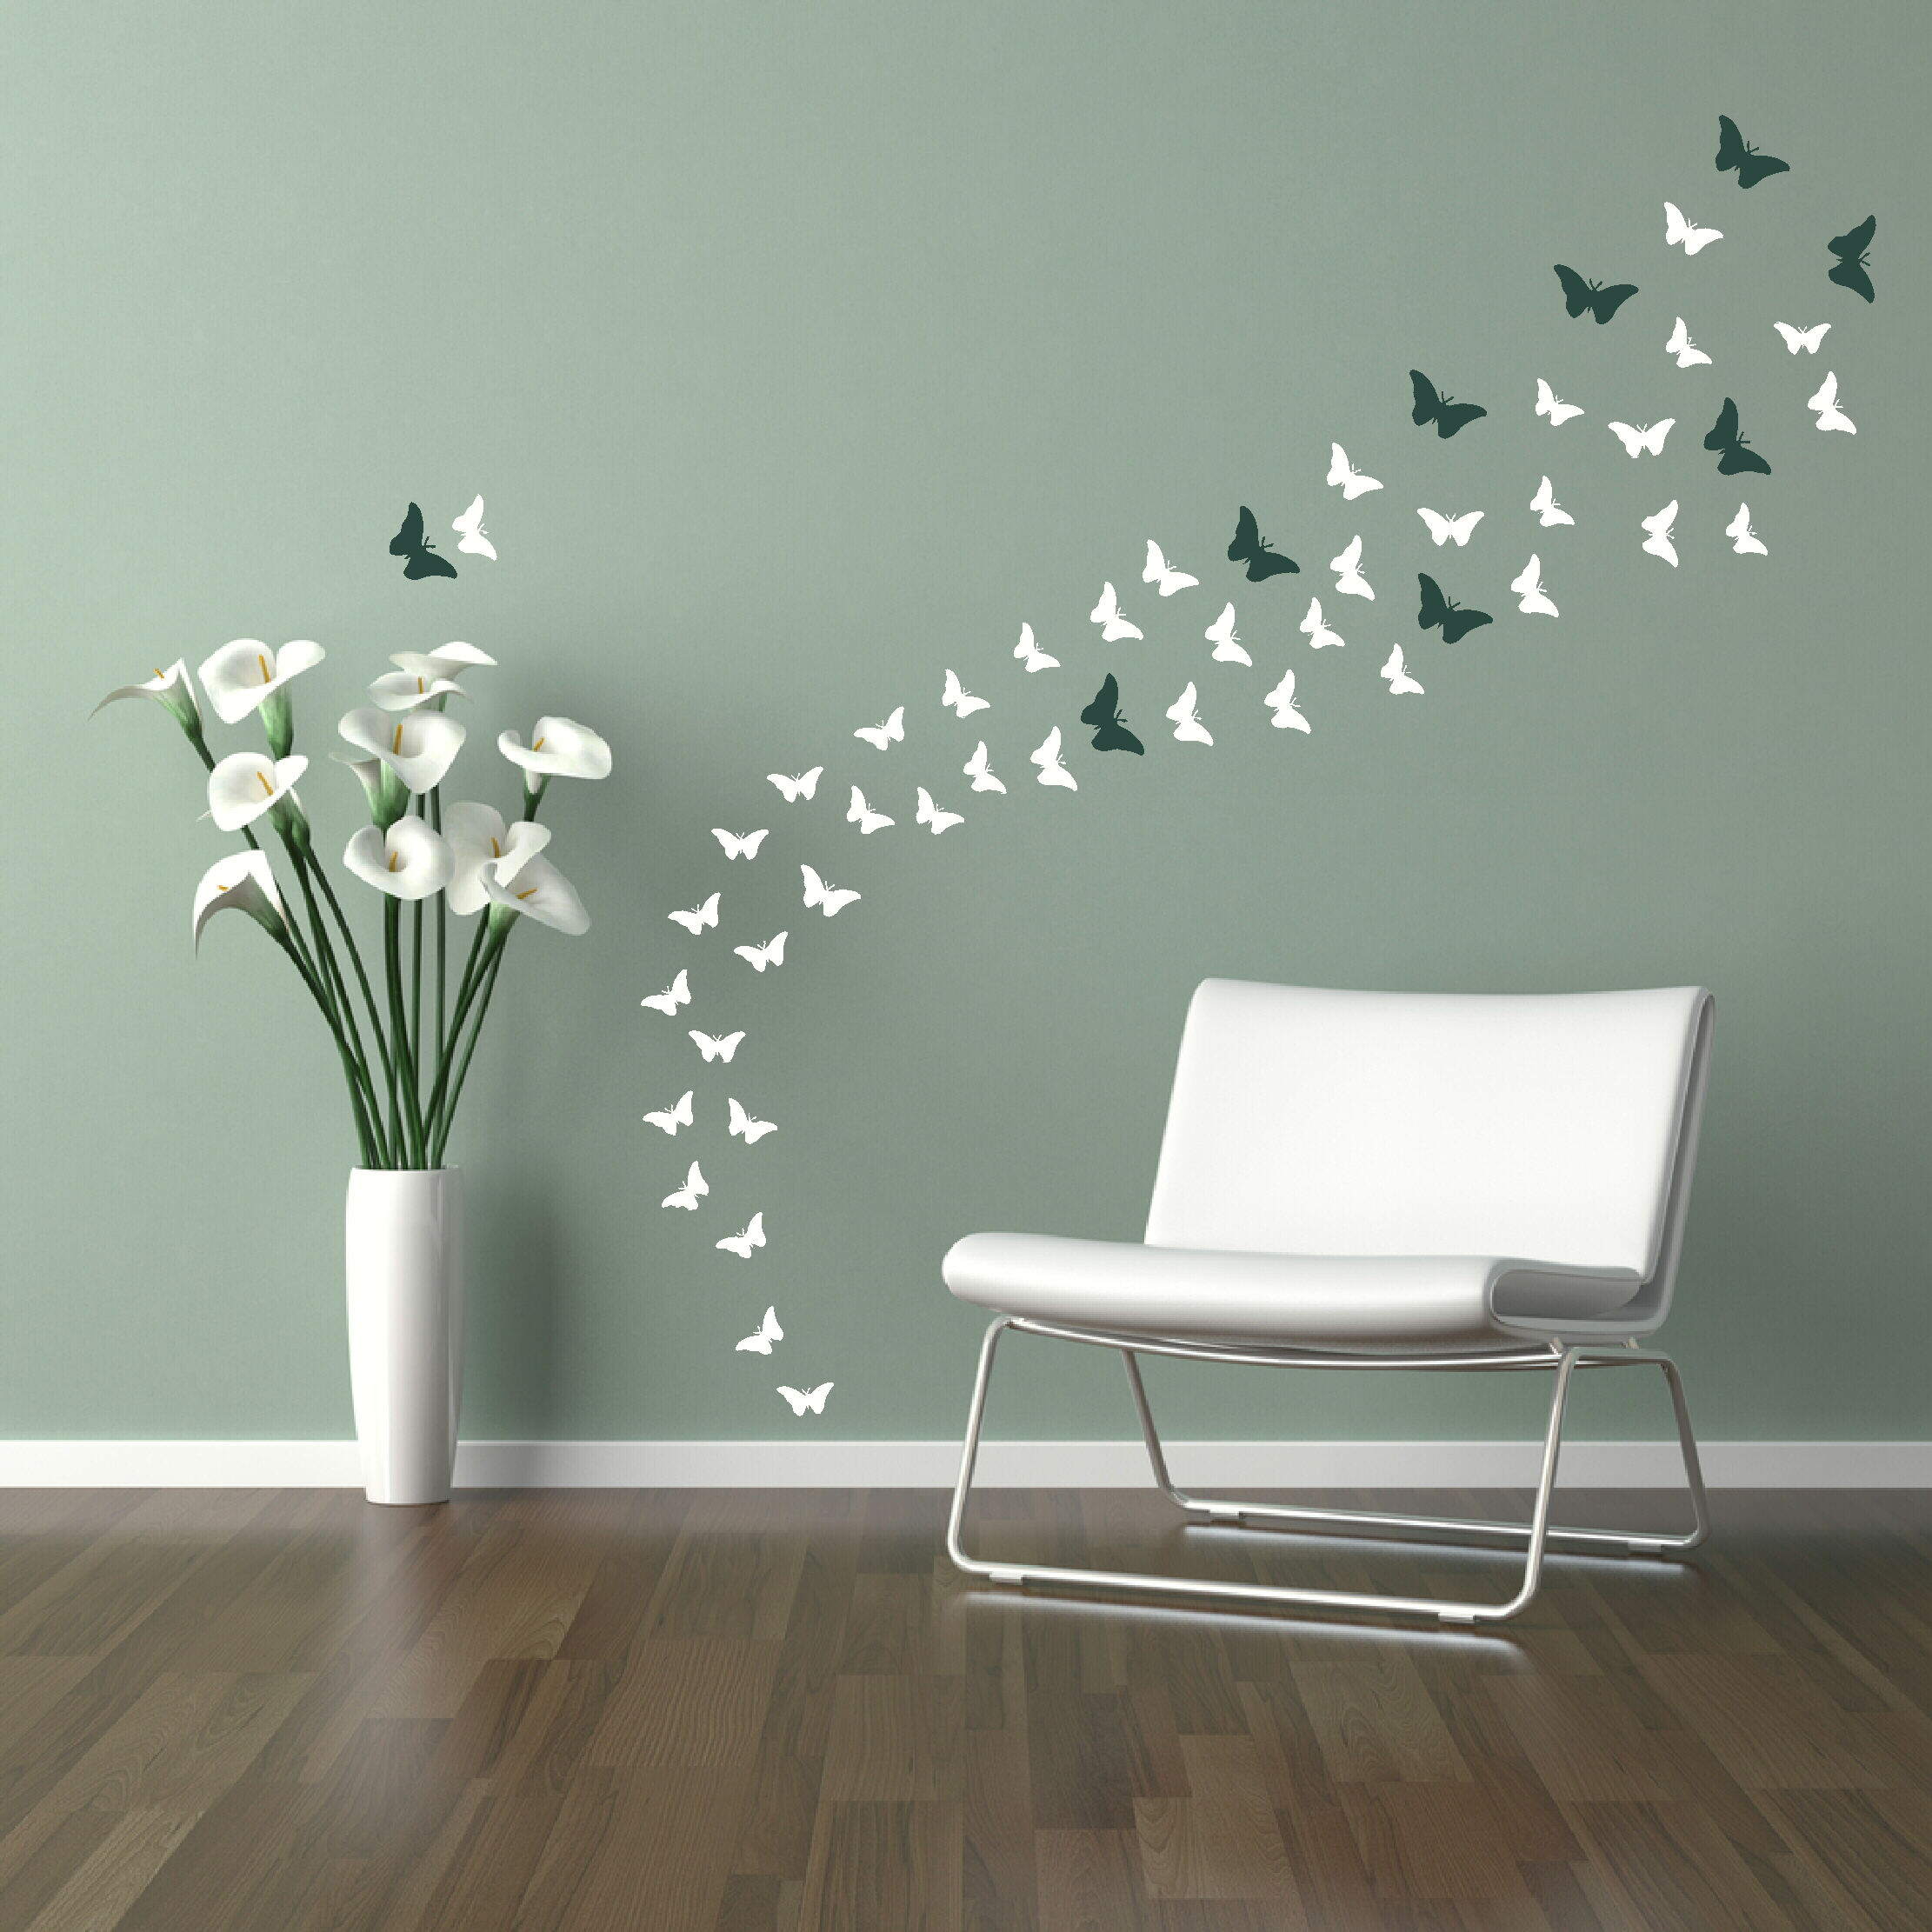 Image of: butterfly wall decoration